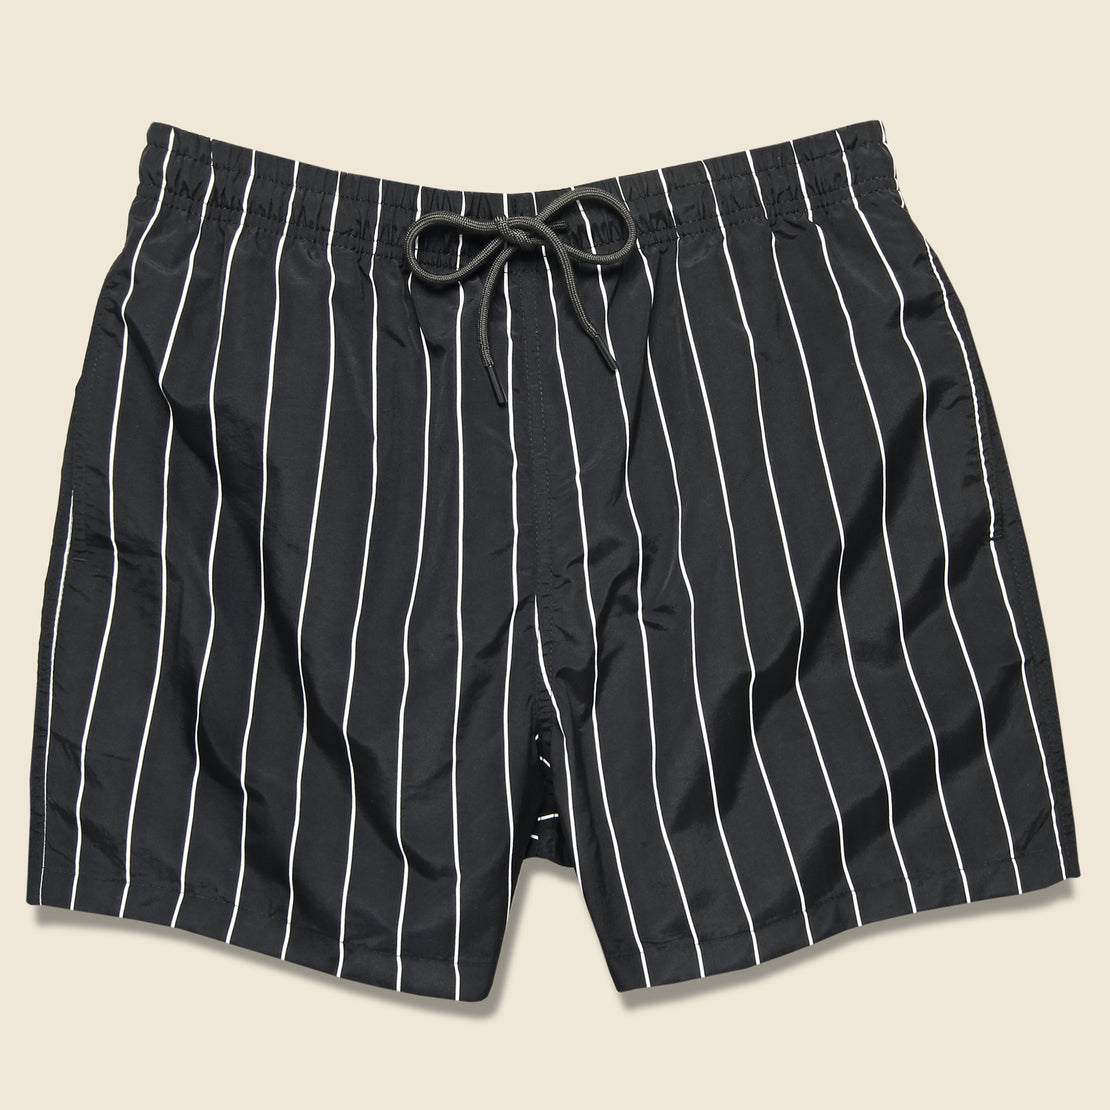 Solid & Striped Pinstripe Swim Trunk - Black/Cream